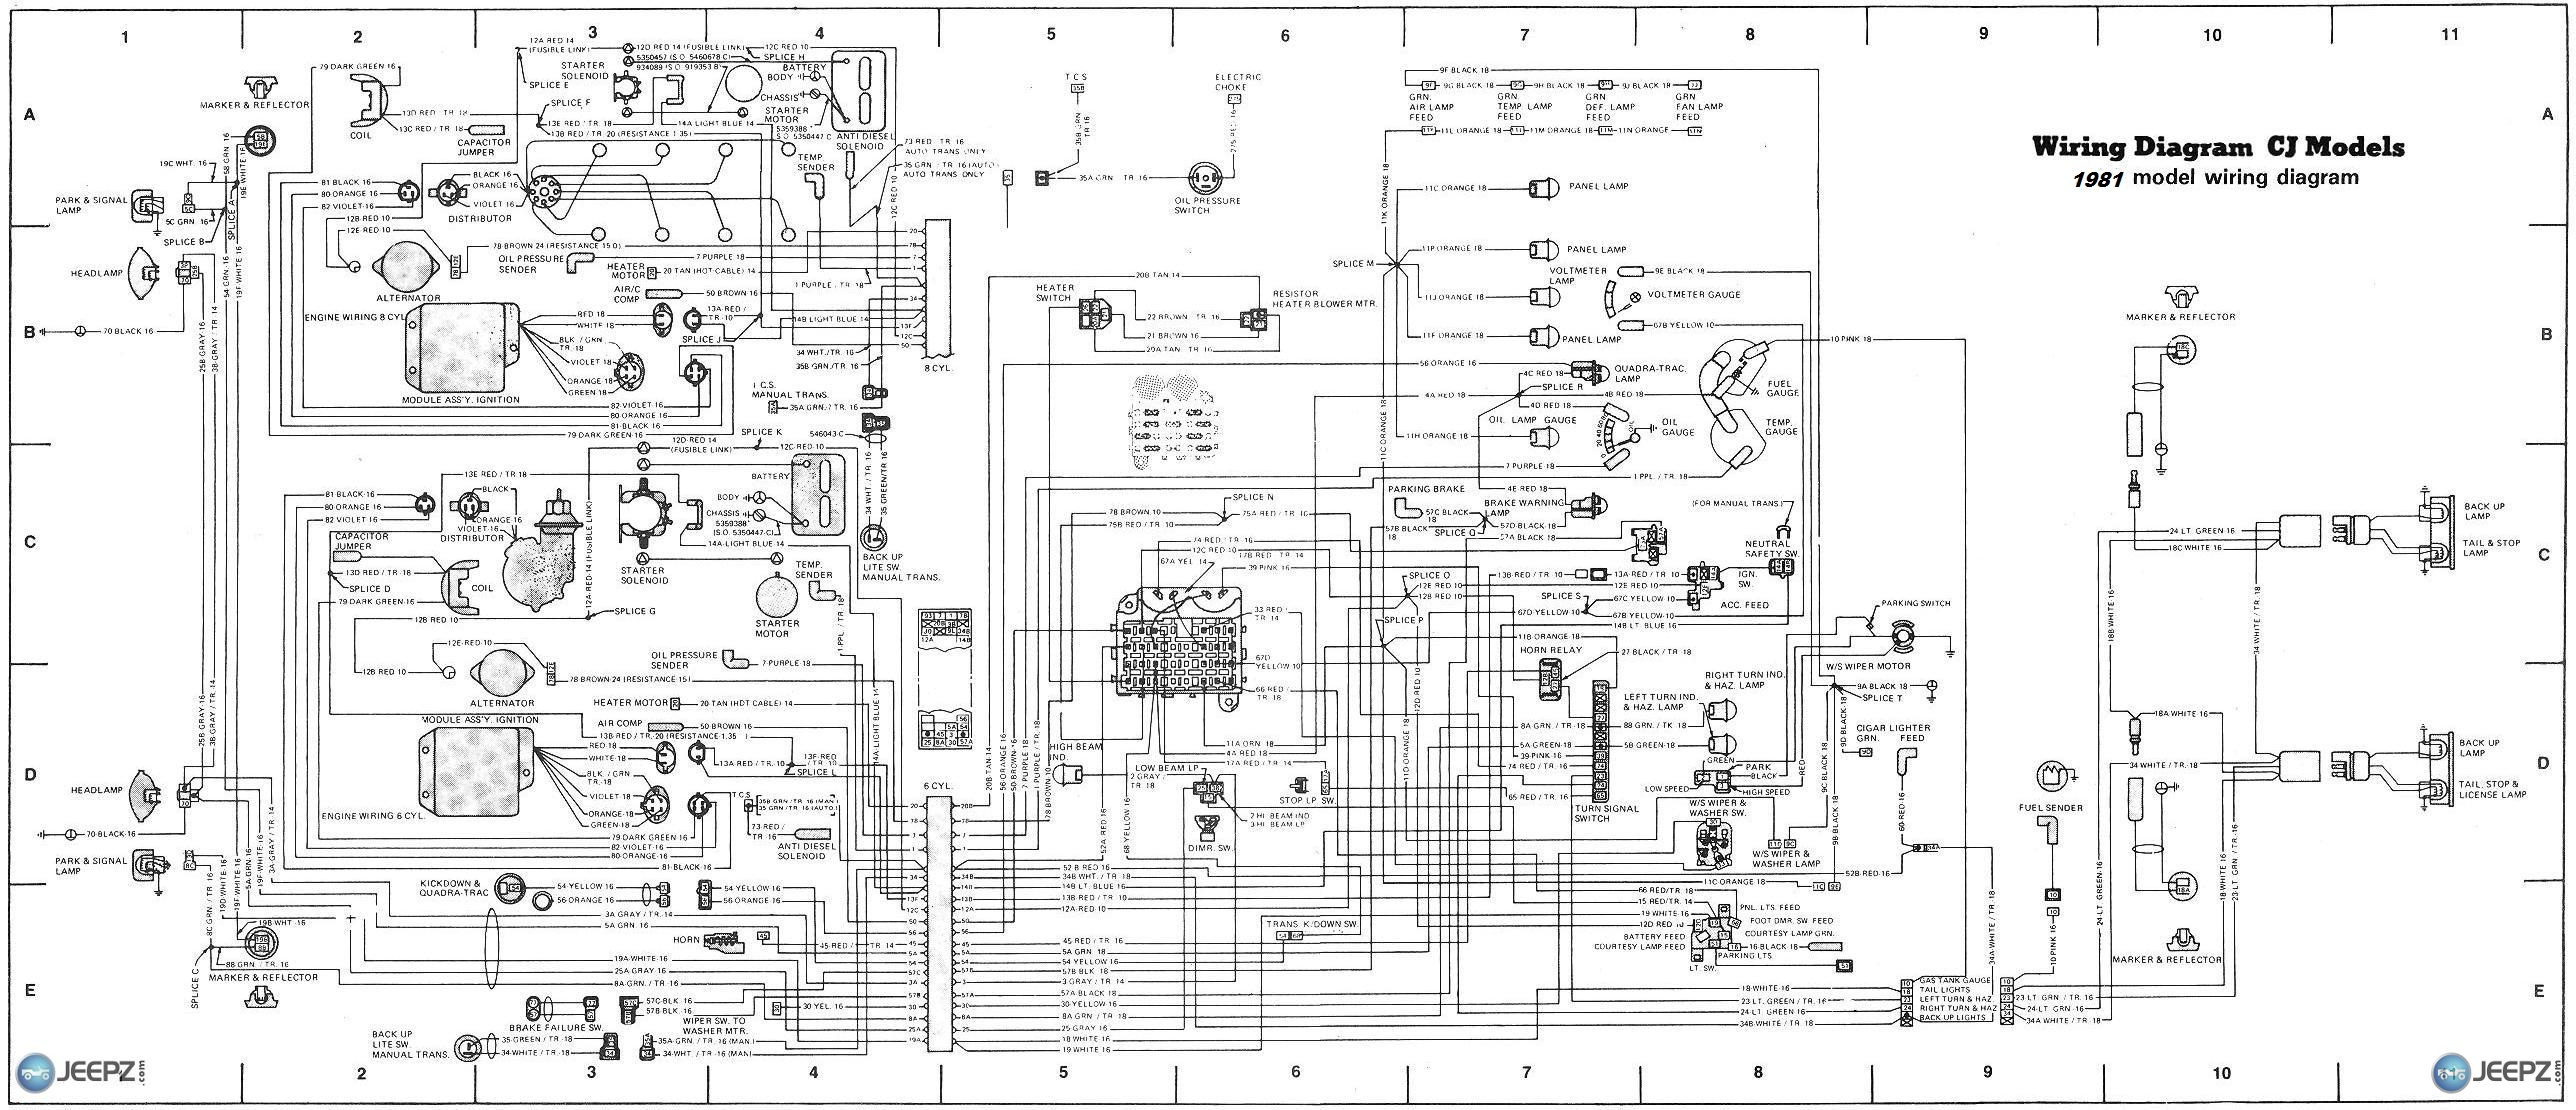 Dj5 Wiring Diagram - Wiring Data Diagram on willys jeep wiring diagram, 1998 jeep cherokee wiring diagram, 1972 jeep wiring diagram,